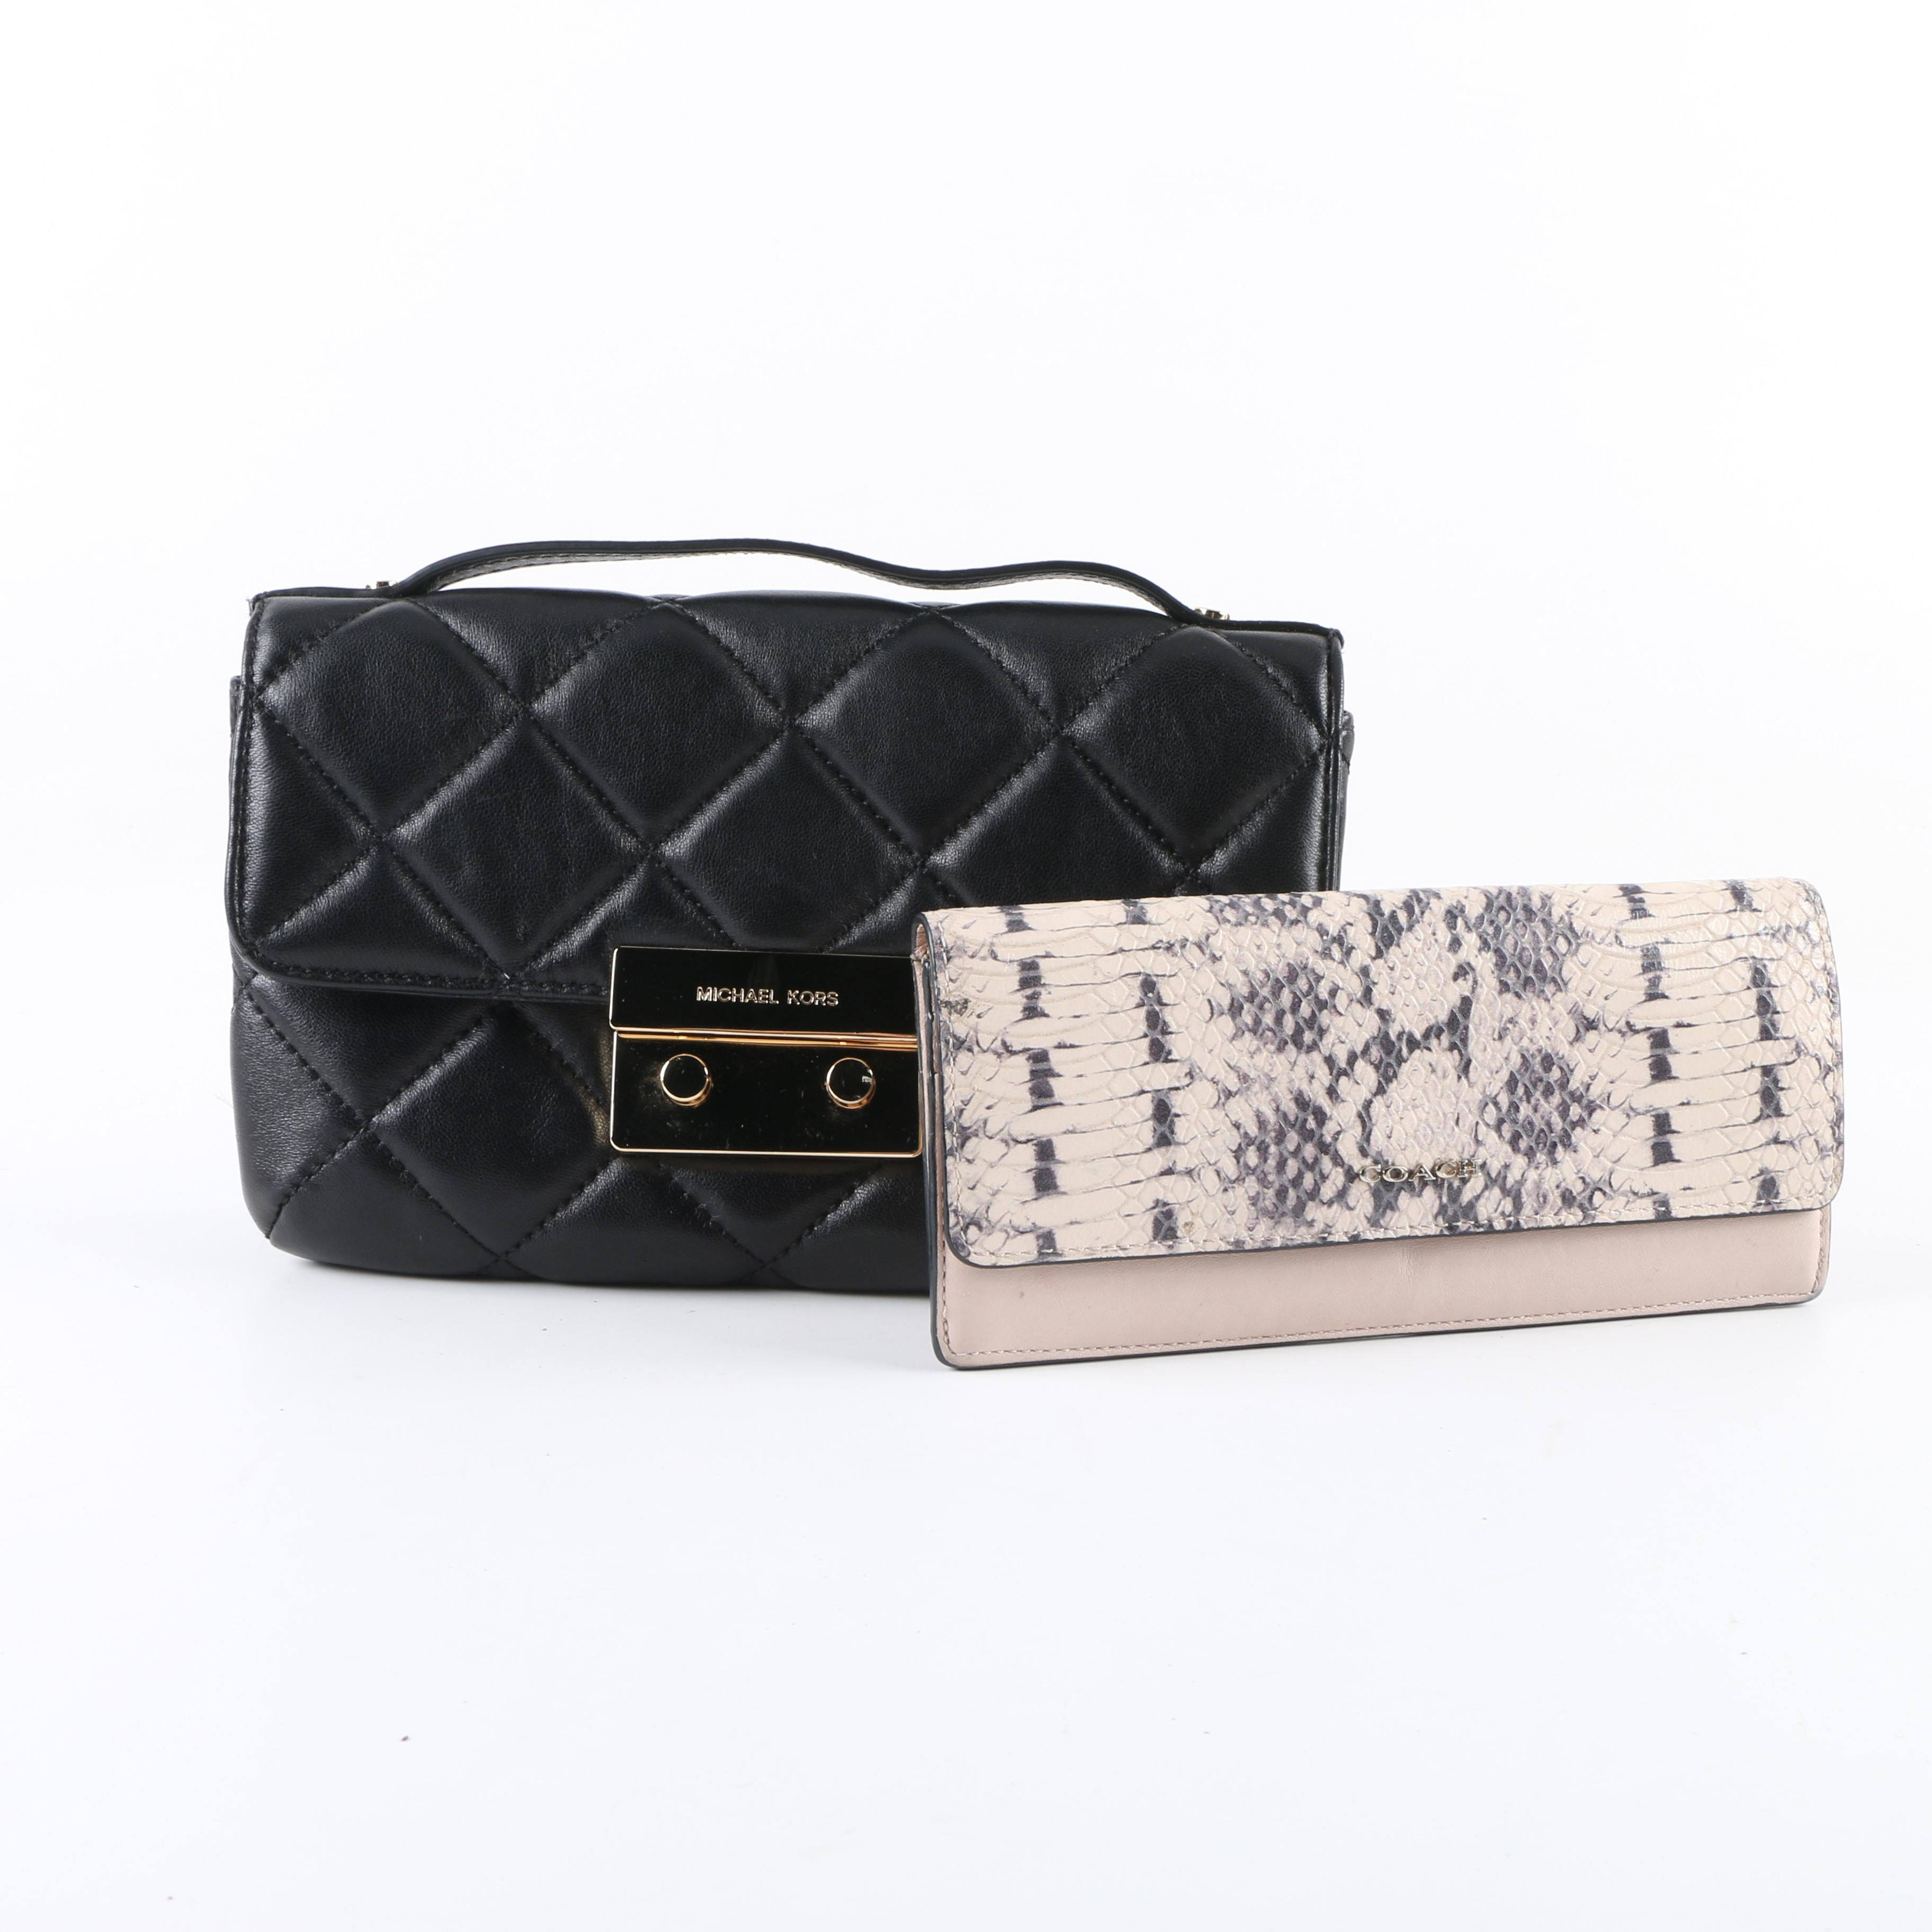 Michael Kors Quilted Black Leather Convertible Clutch with Coach Wallet